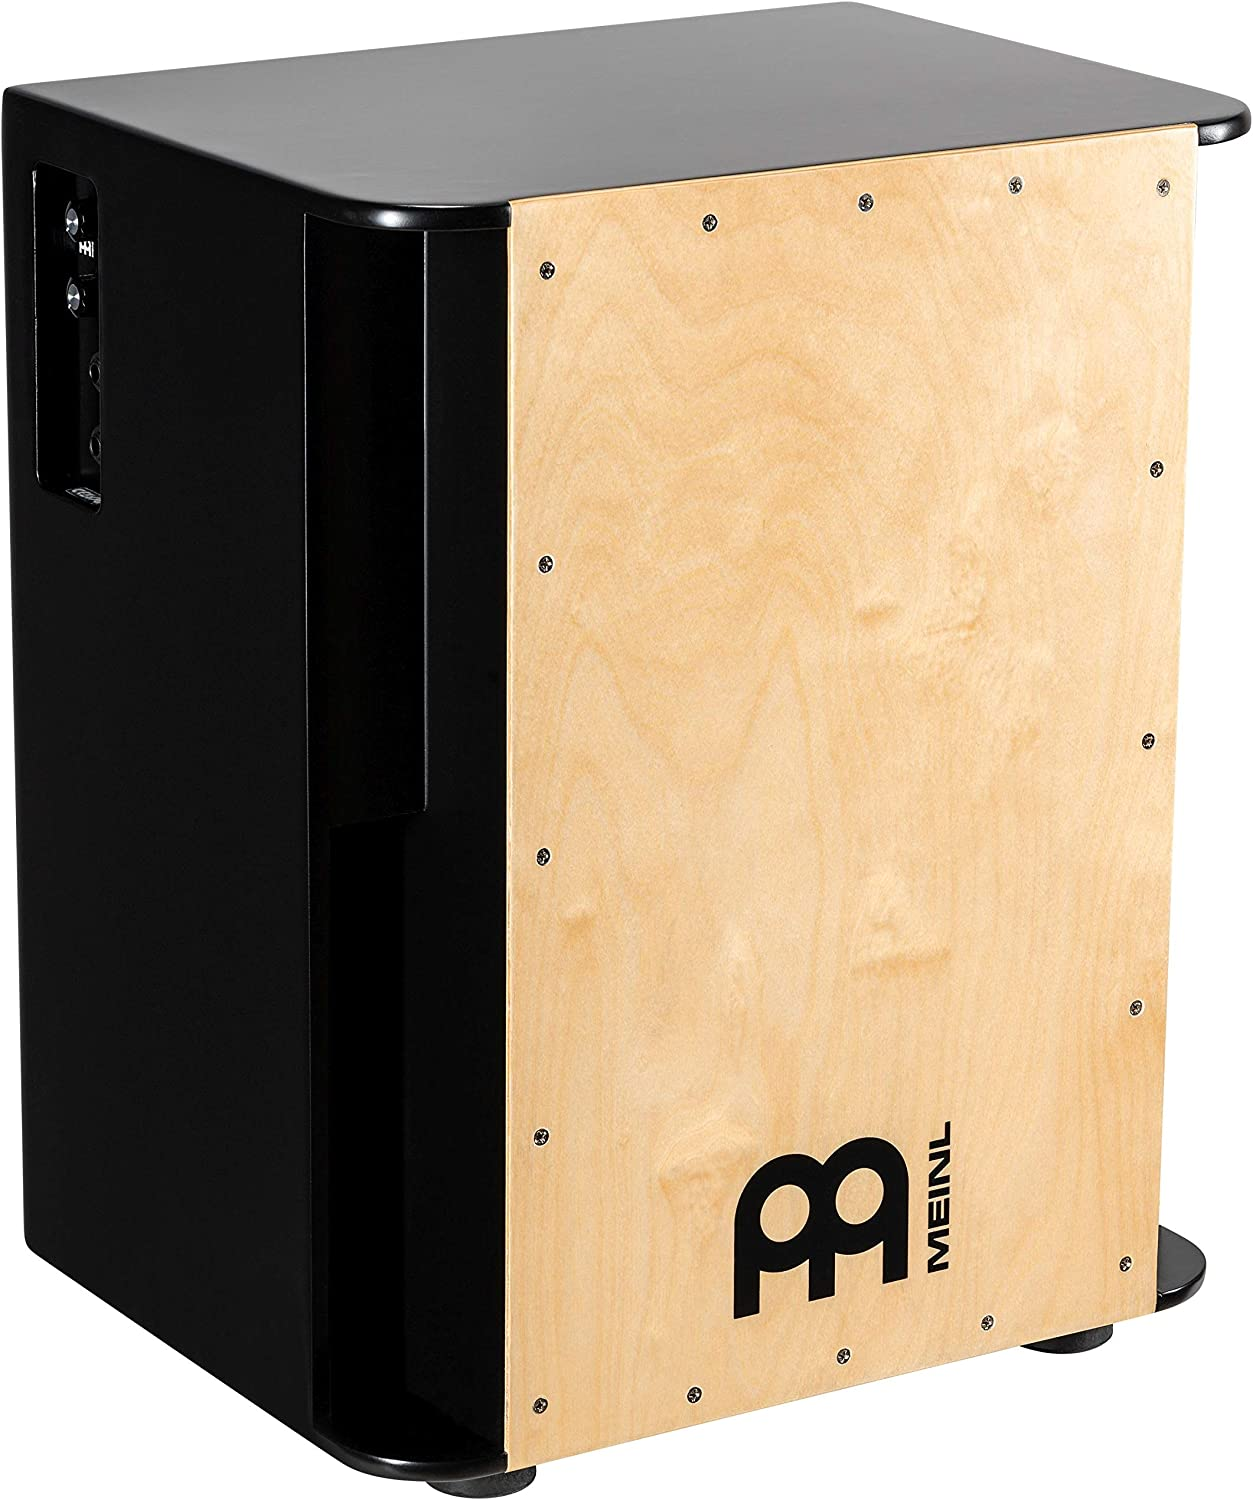 Meinl Percussion Pickup Vertical Subwoofer Bass Cajon Box Drum with Snares and Electronics for Amp or PA System — NOT MADE IN CHINA — Baltic Birch Playing Surface, 2-YEAR WARRANTY (PSUBCAJ6B)